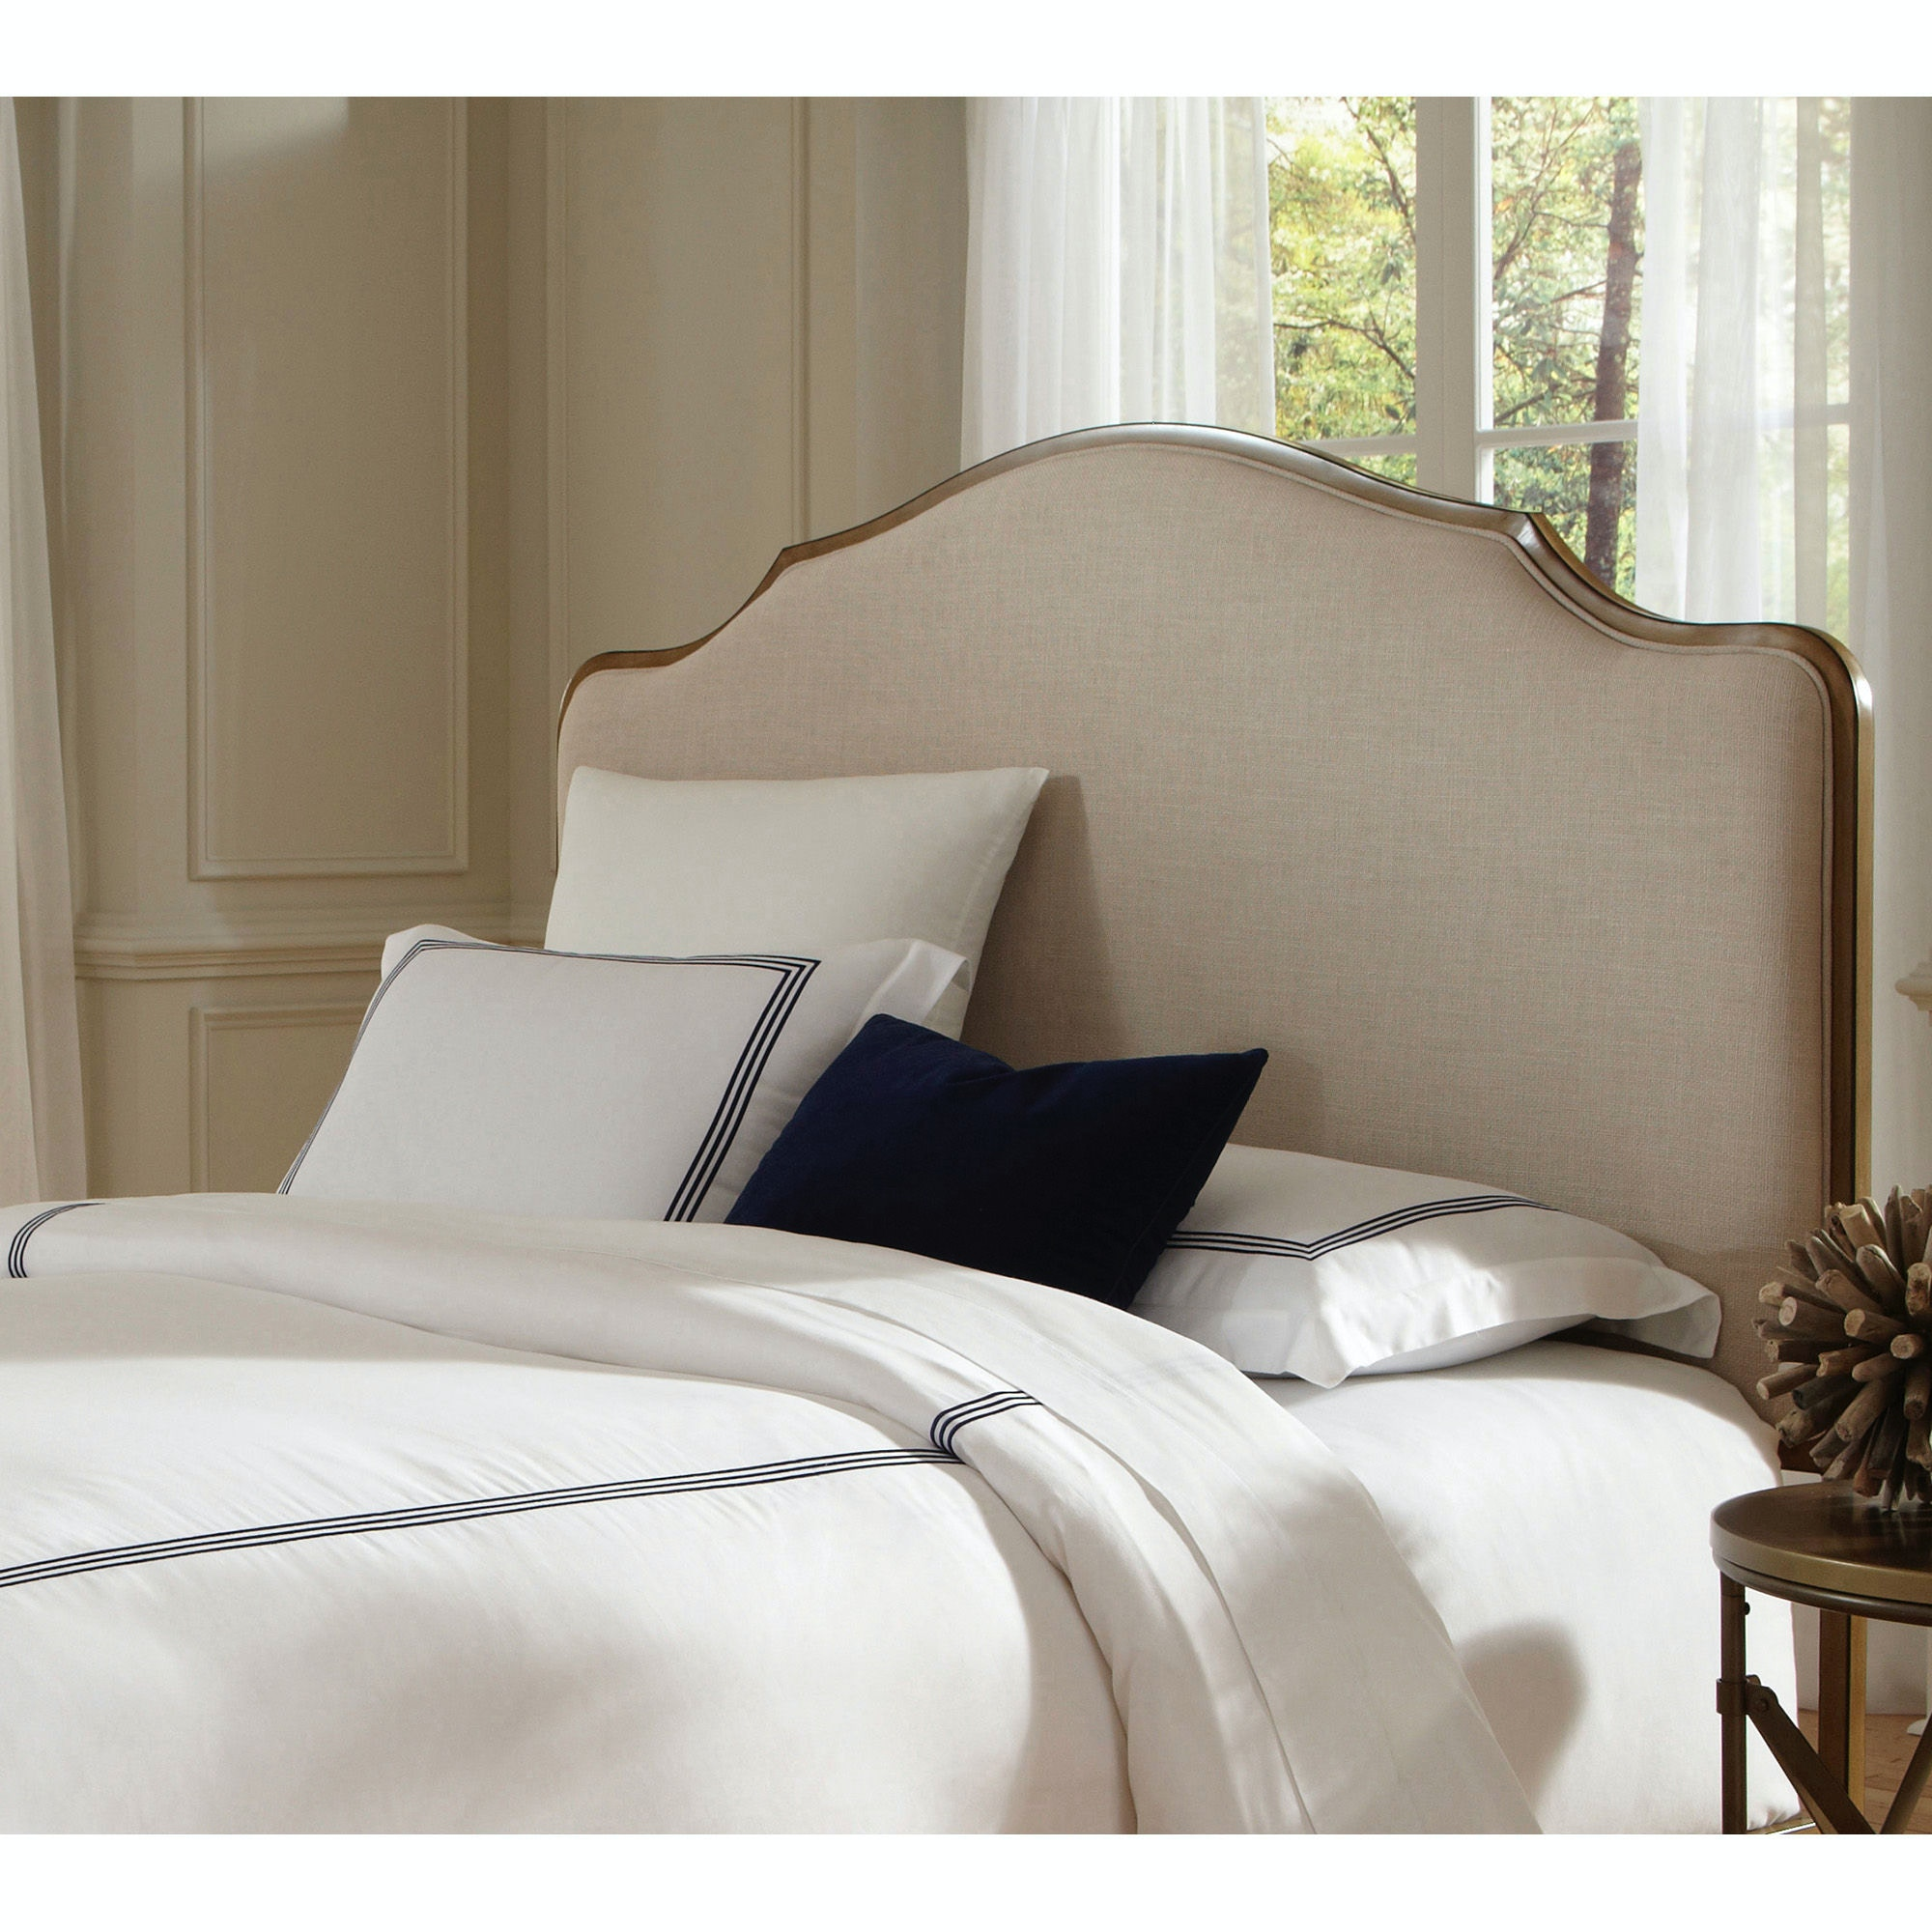 Fashion Bed Group Calvados Metal Headboard With Sand Colored Upholstery,  Natural Oak Finish, King